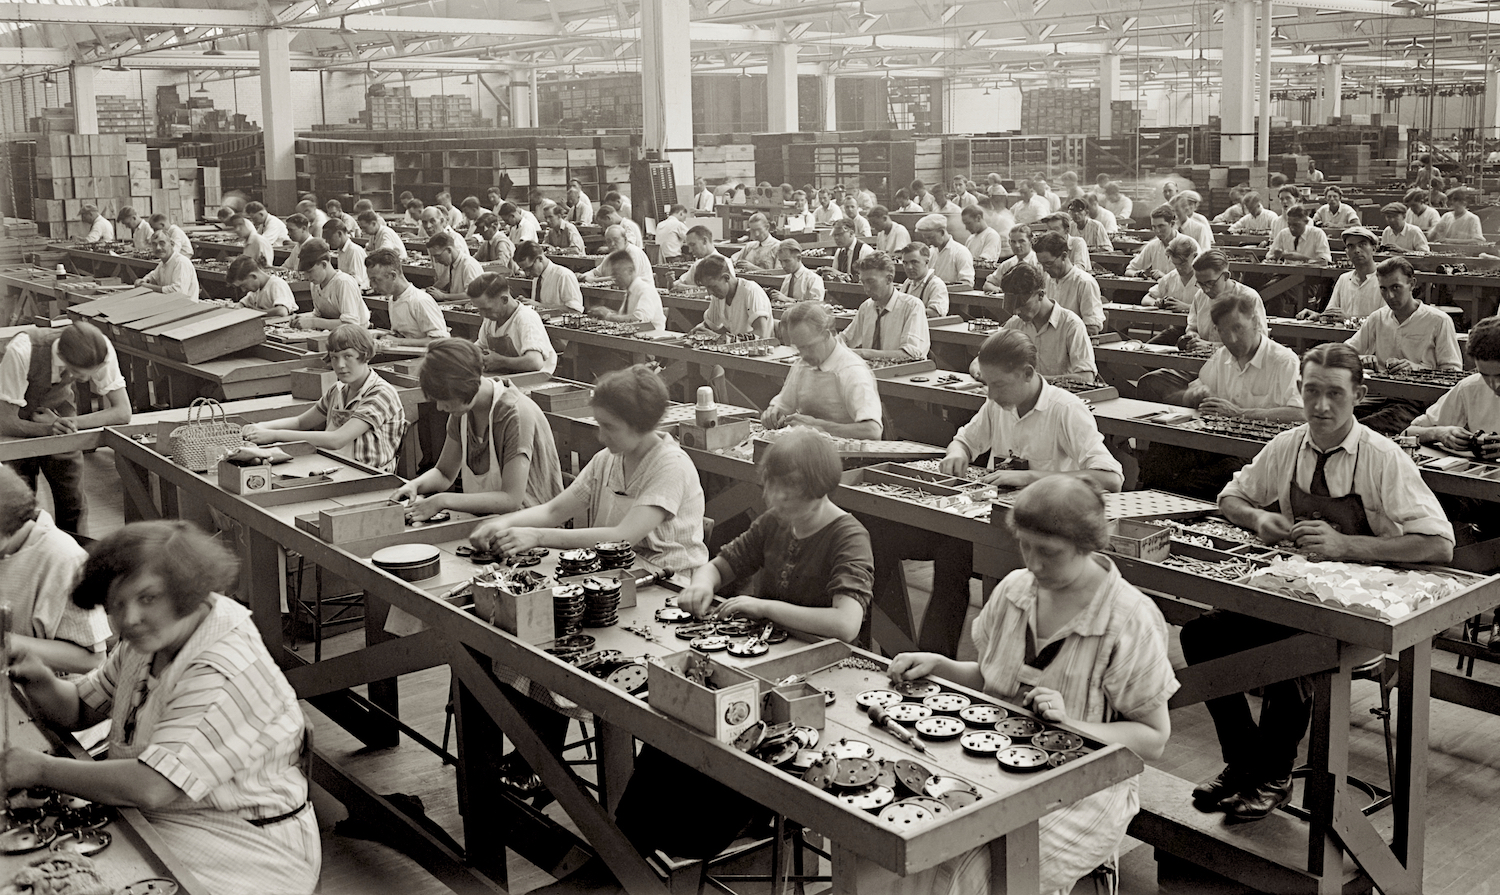 Workplace seating in the Industrial Age. Shop floor at the Atwater Kent Radio Factory, Philadelphia. 1925. Everett Historical Collection.